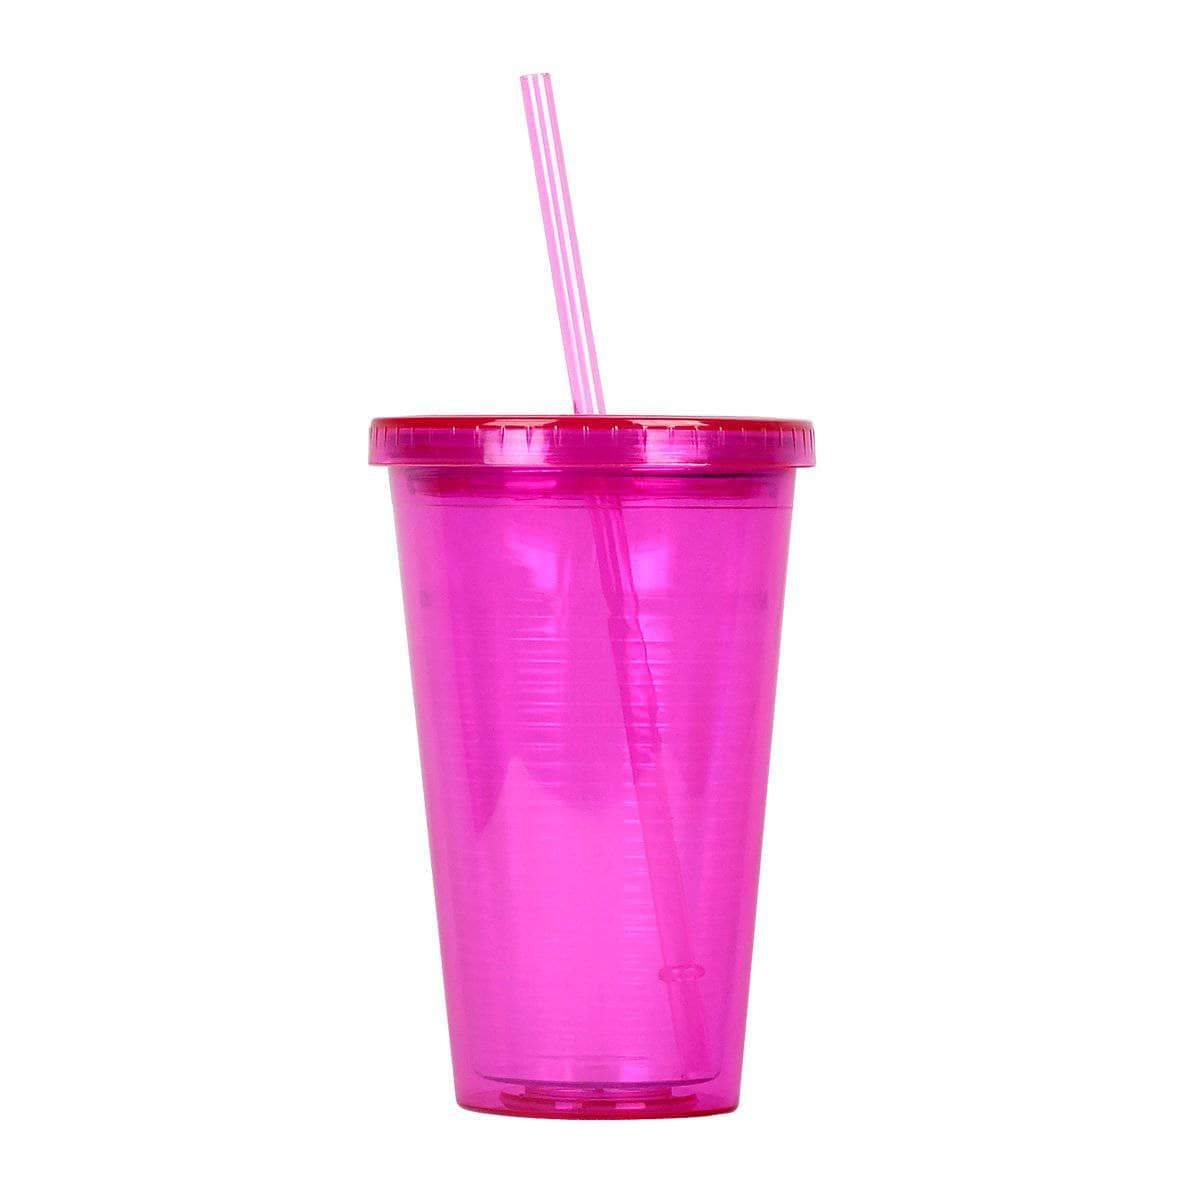 Geo Bottles Tumblers Pink 16oz Double Wall Cup with Straw - BPA Free